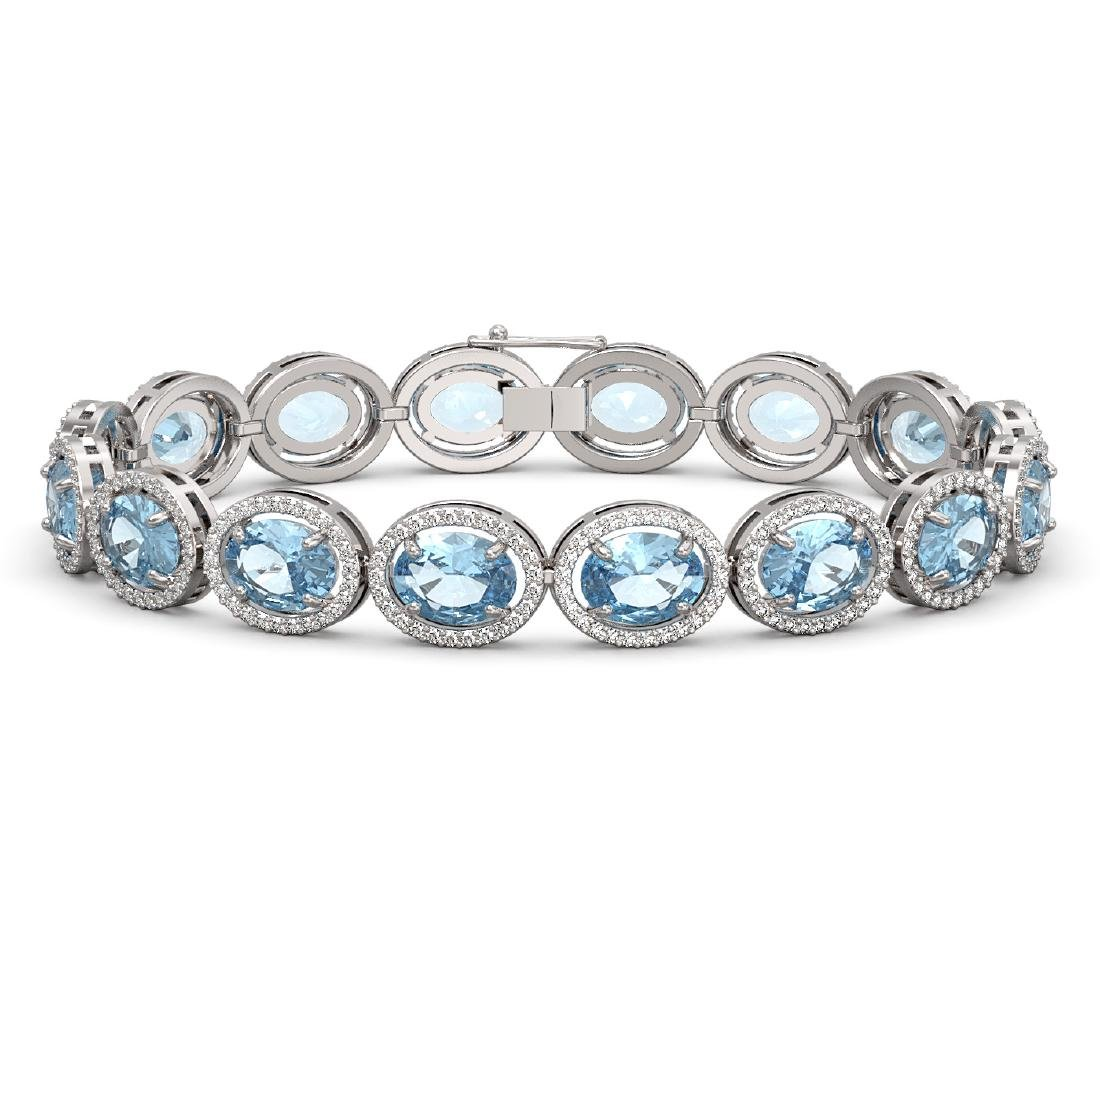 23.44 CTW Aquamarine & Diamond Halo Bracelet 10K White